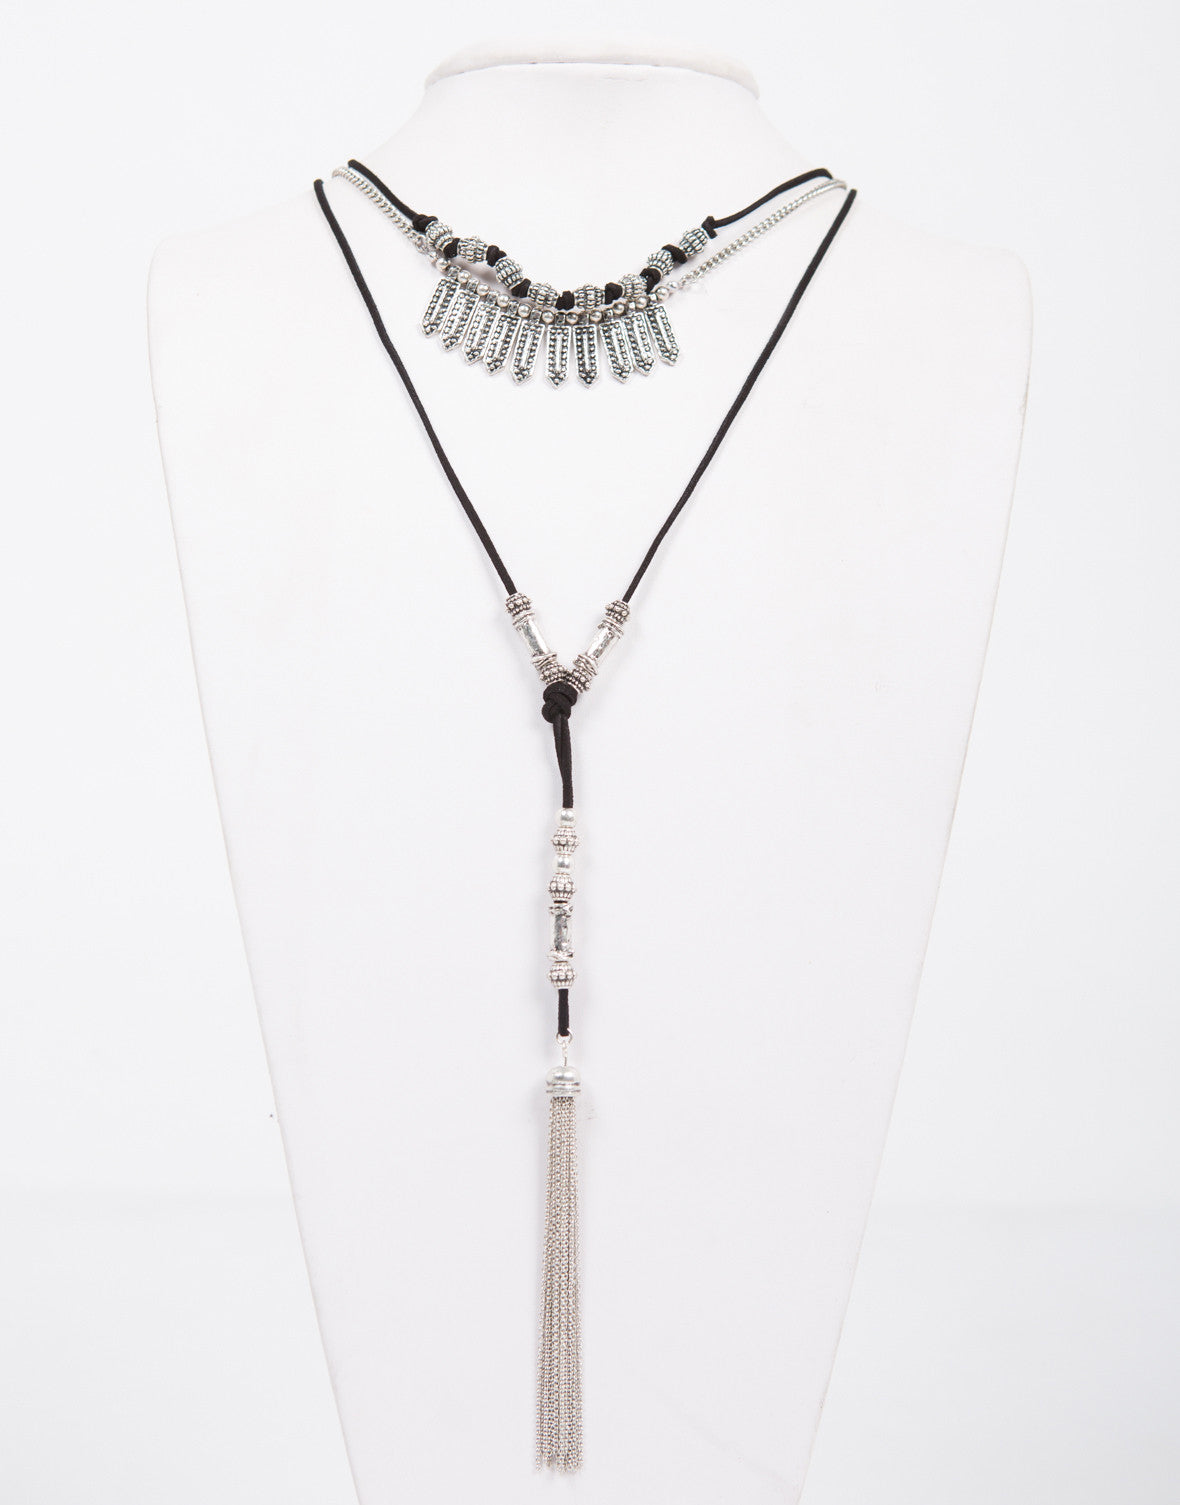 Out West Layered Necklace